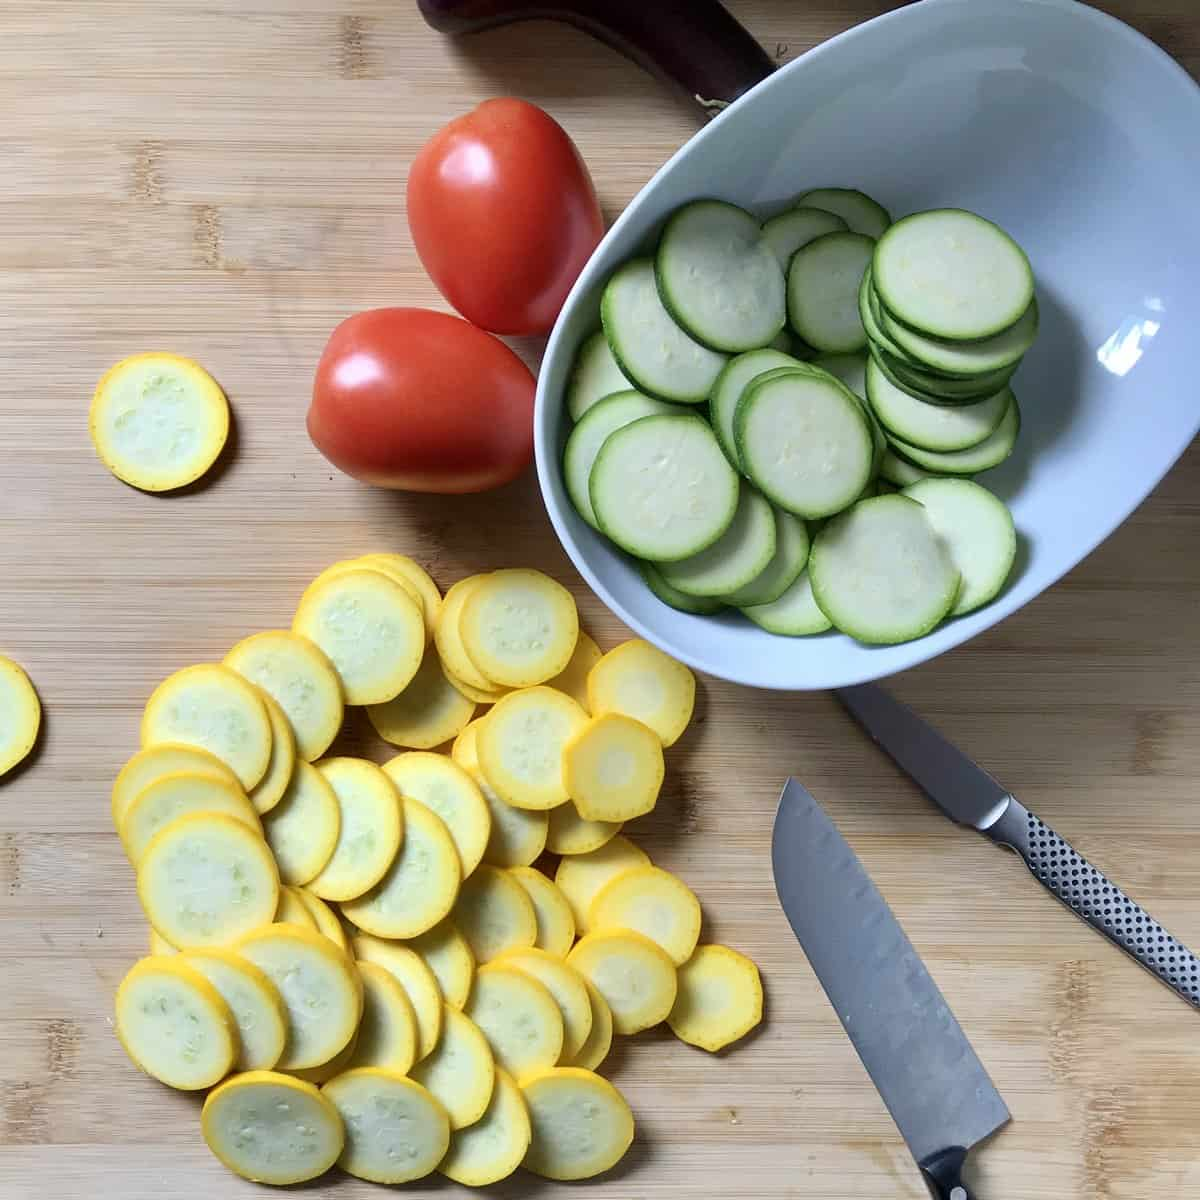 Sliced zucchini on the cutting board.